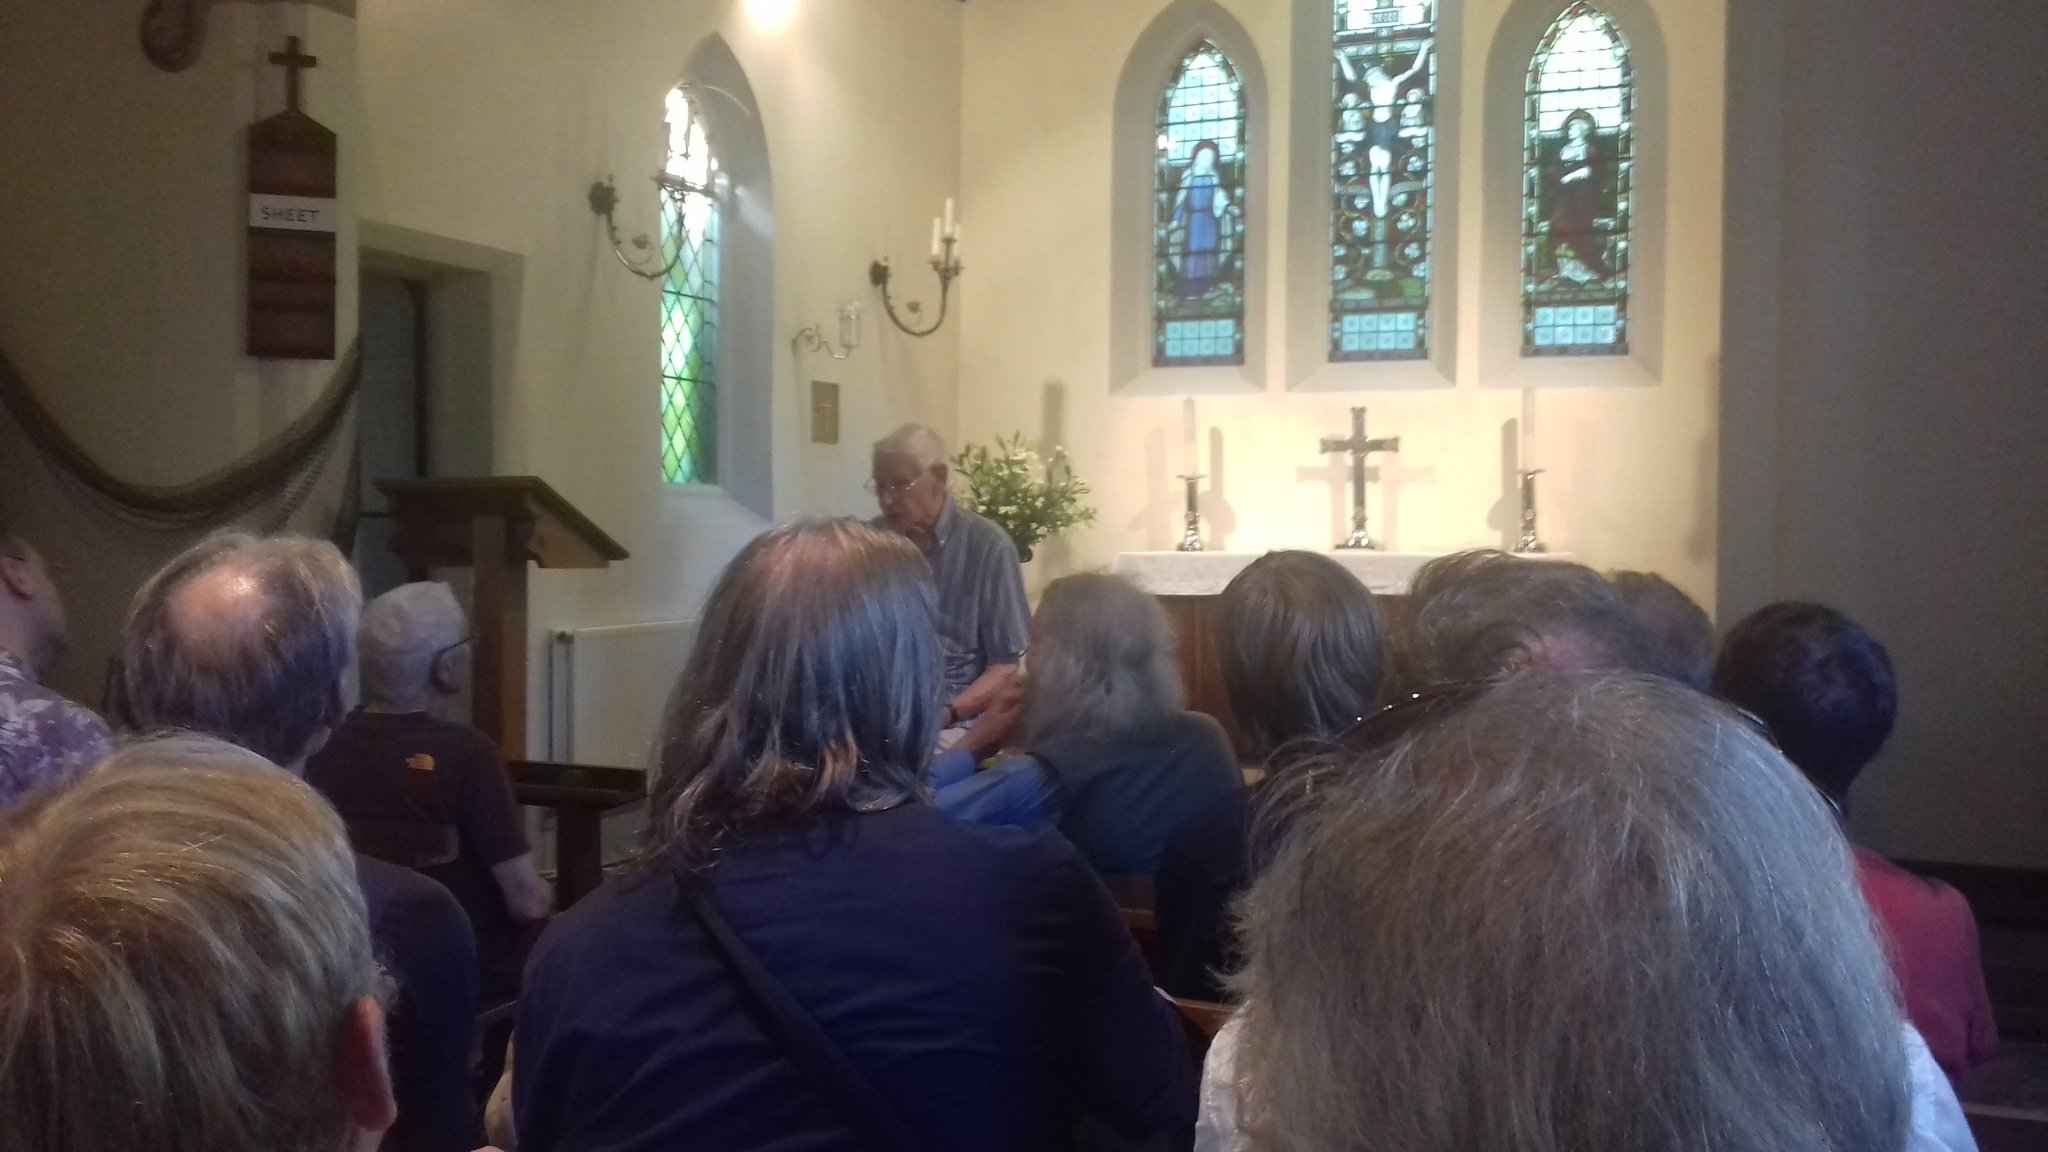 Talk in Heronsgate chapel @ChartismDay2017 https://t.co/ruifgdhAof